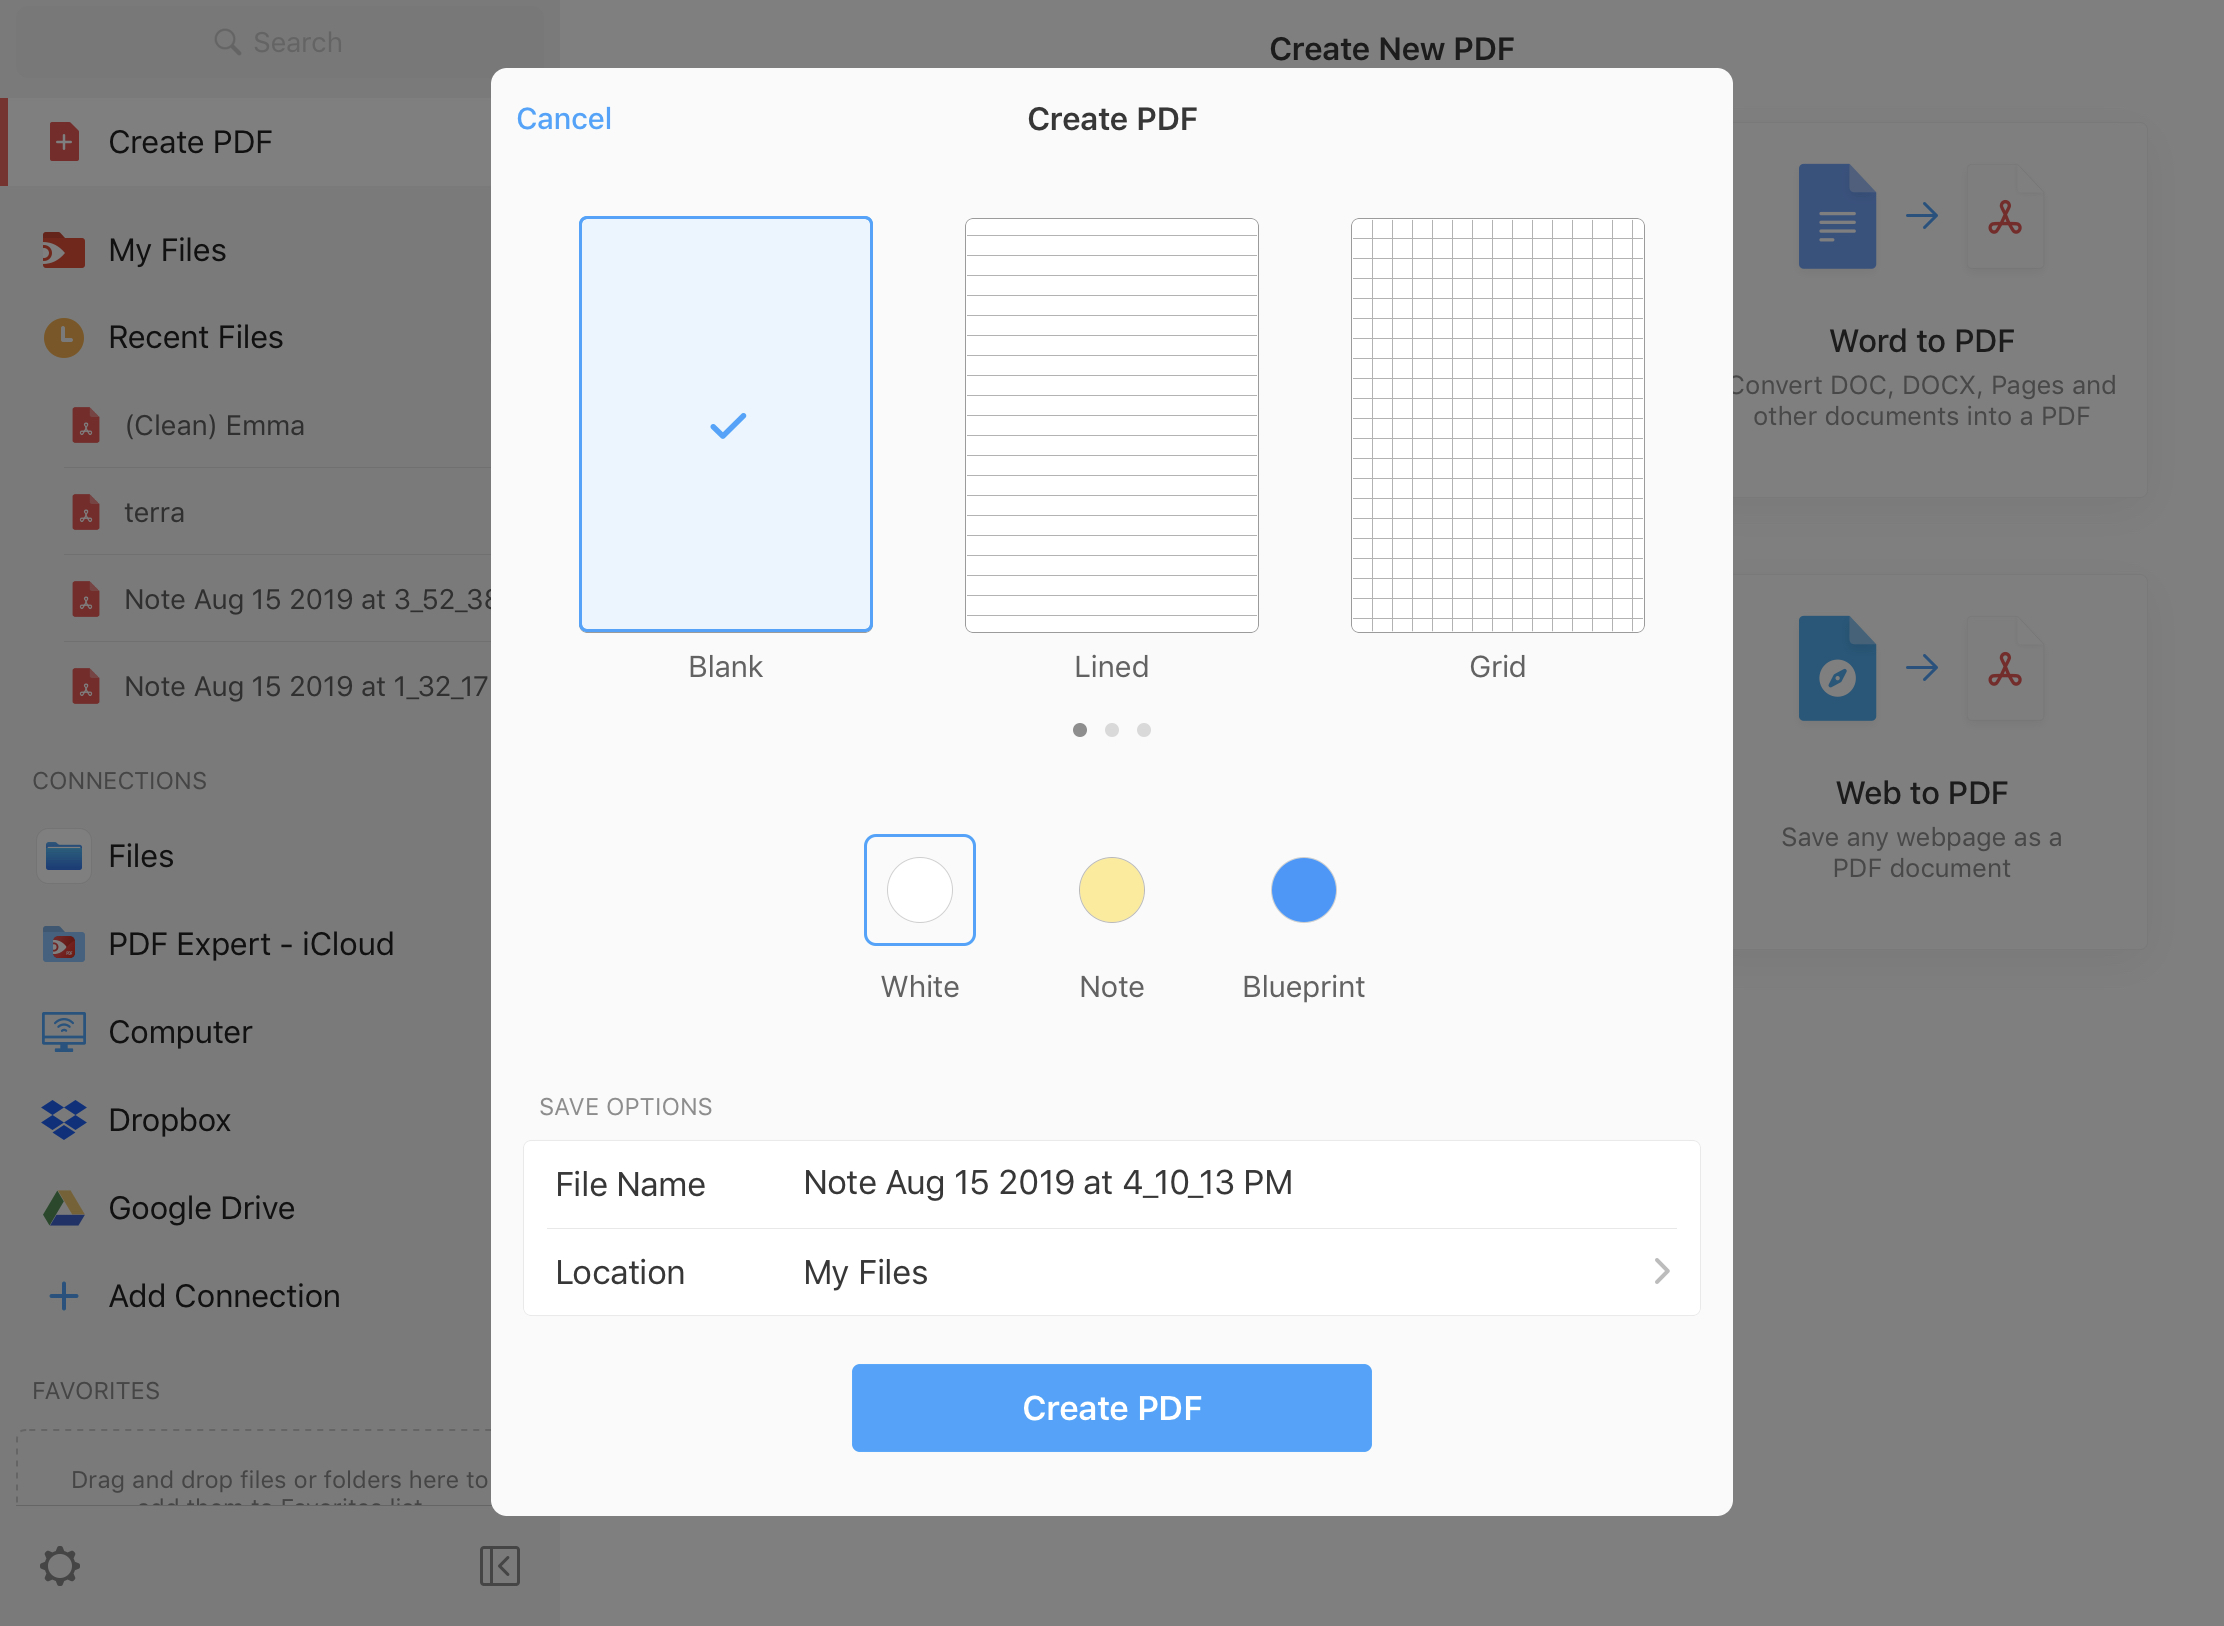 How To Turn Photo Into Pdf On Iphone